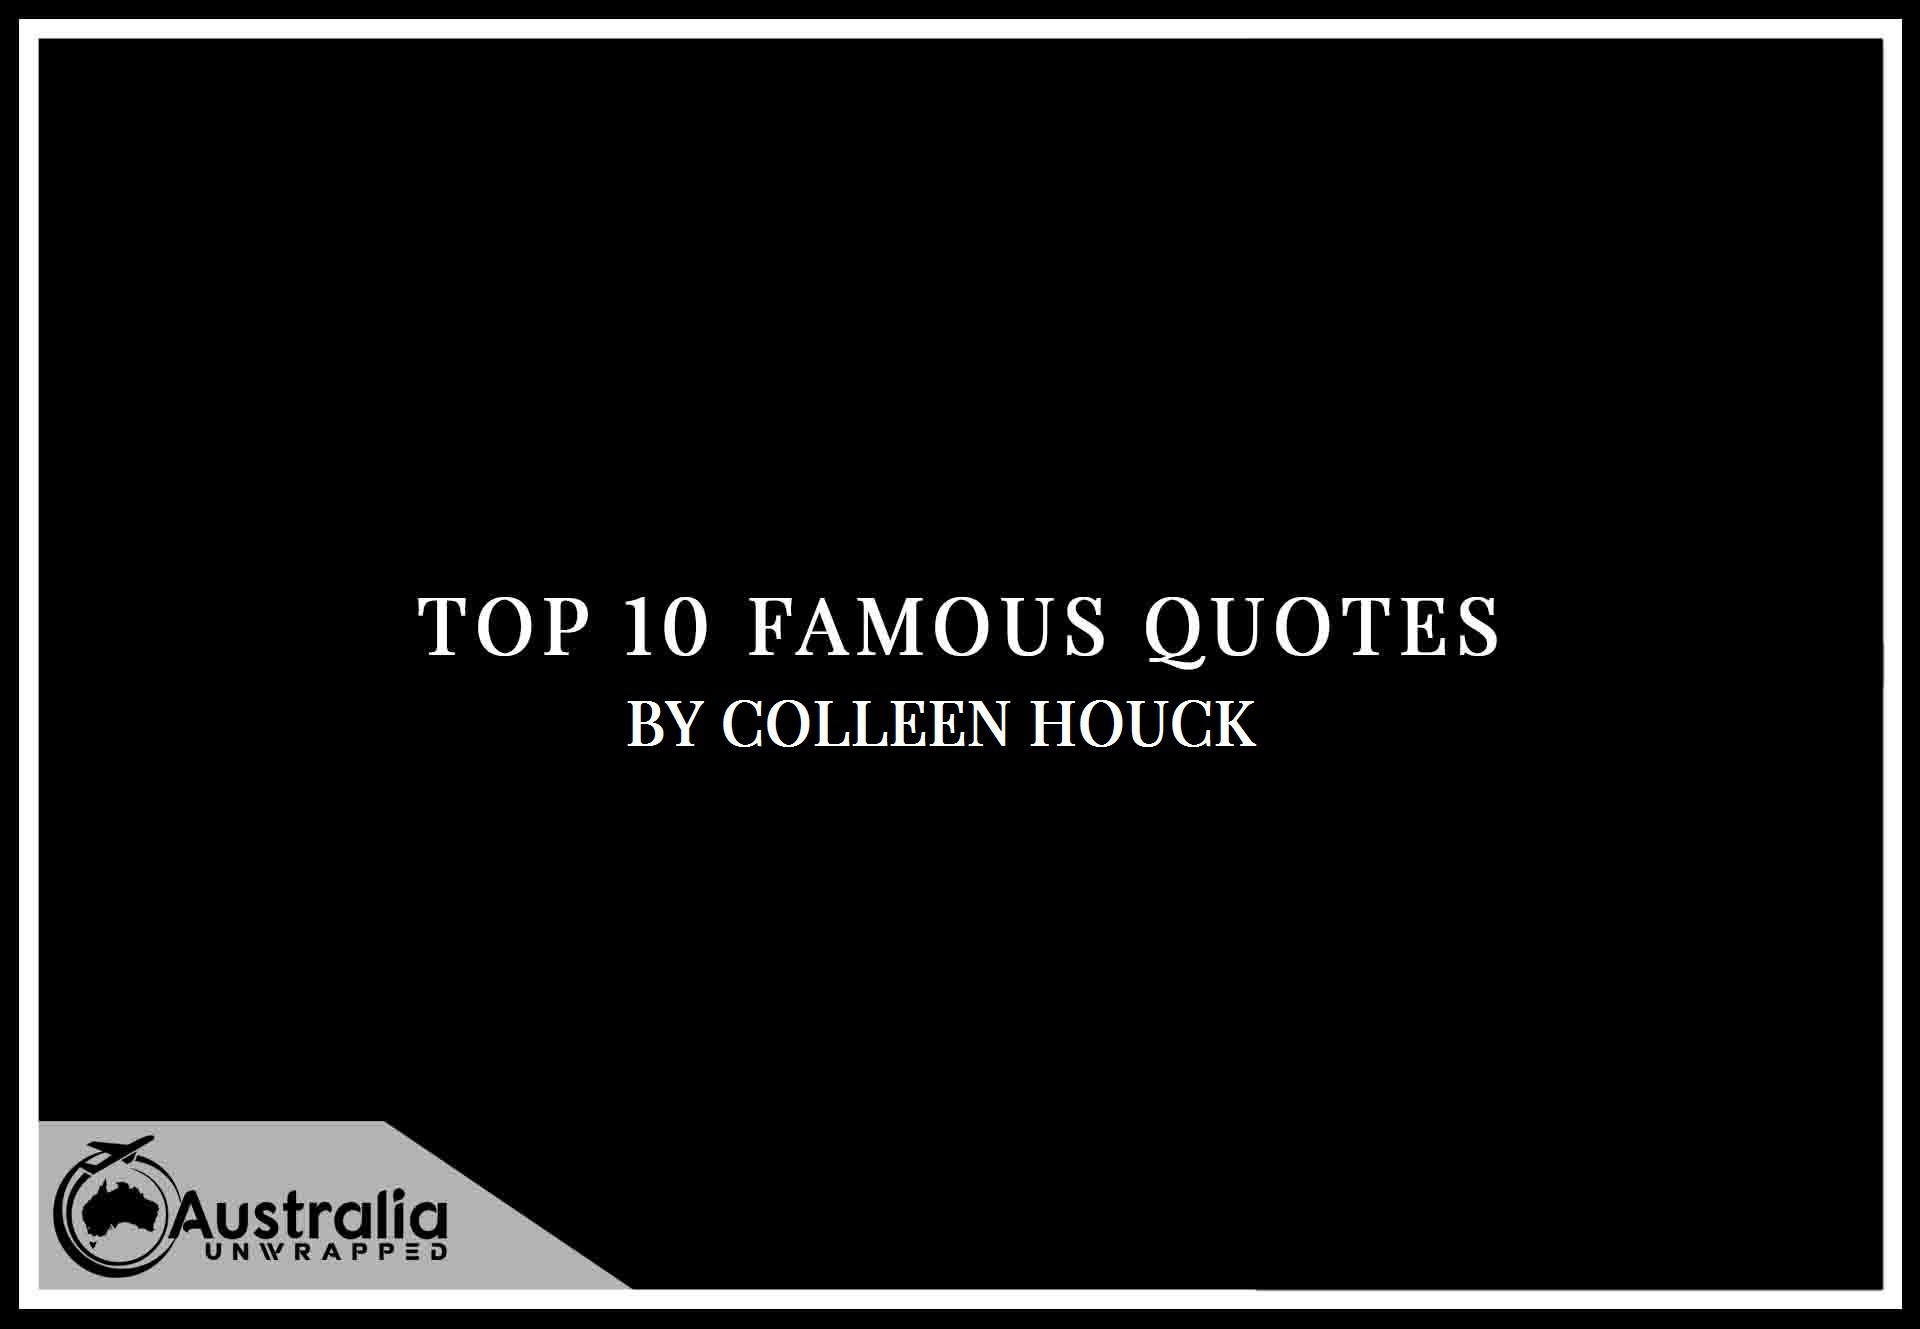 Colleen Houck's Top 10 Popular and Famous Quotes